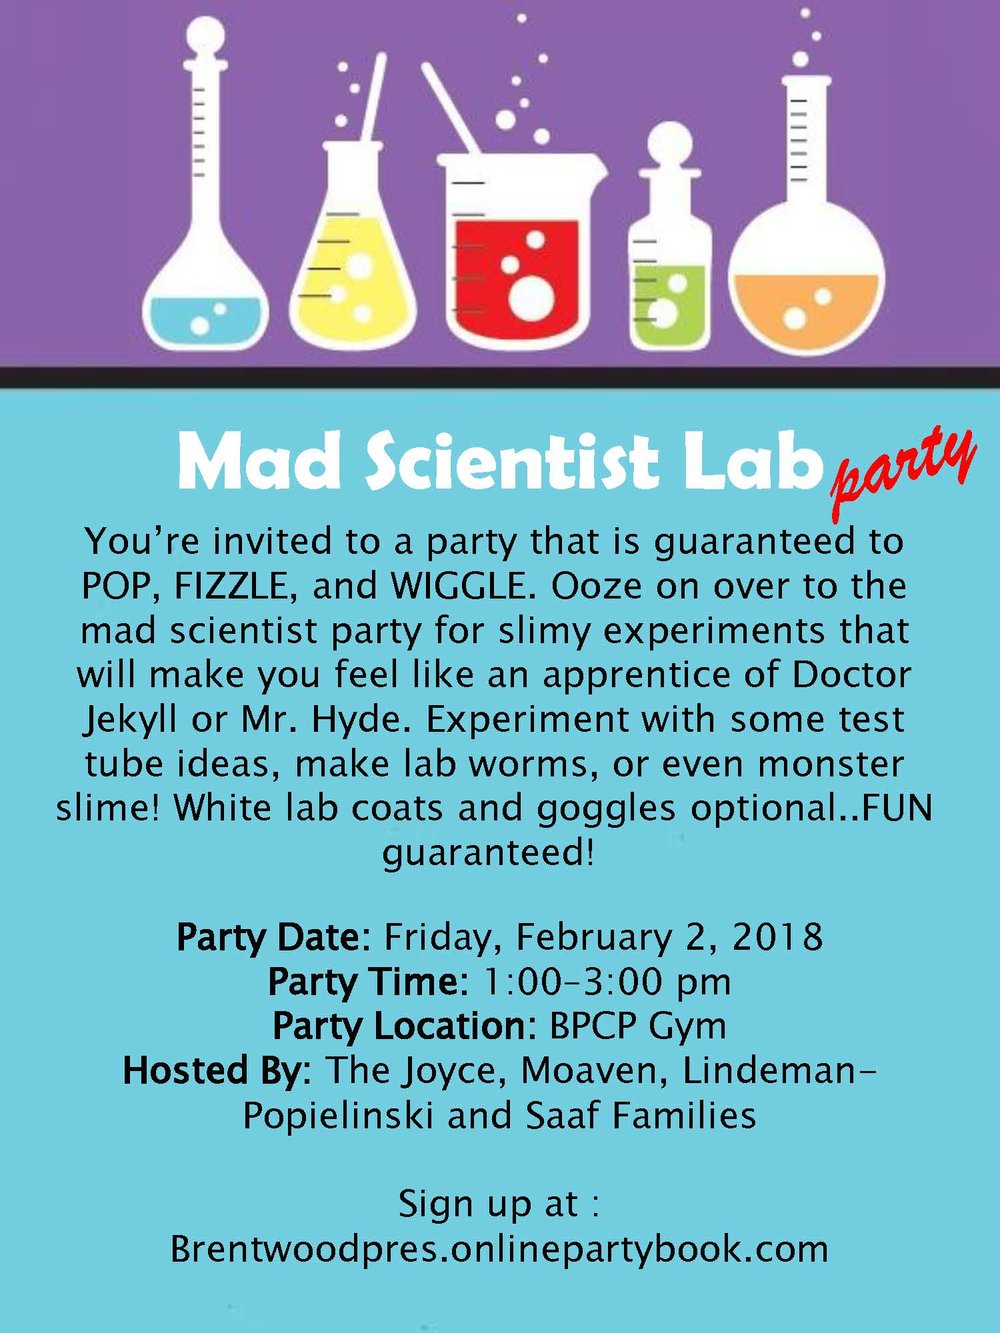 Mad Scientist Lab Party 02.02.18.jpg